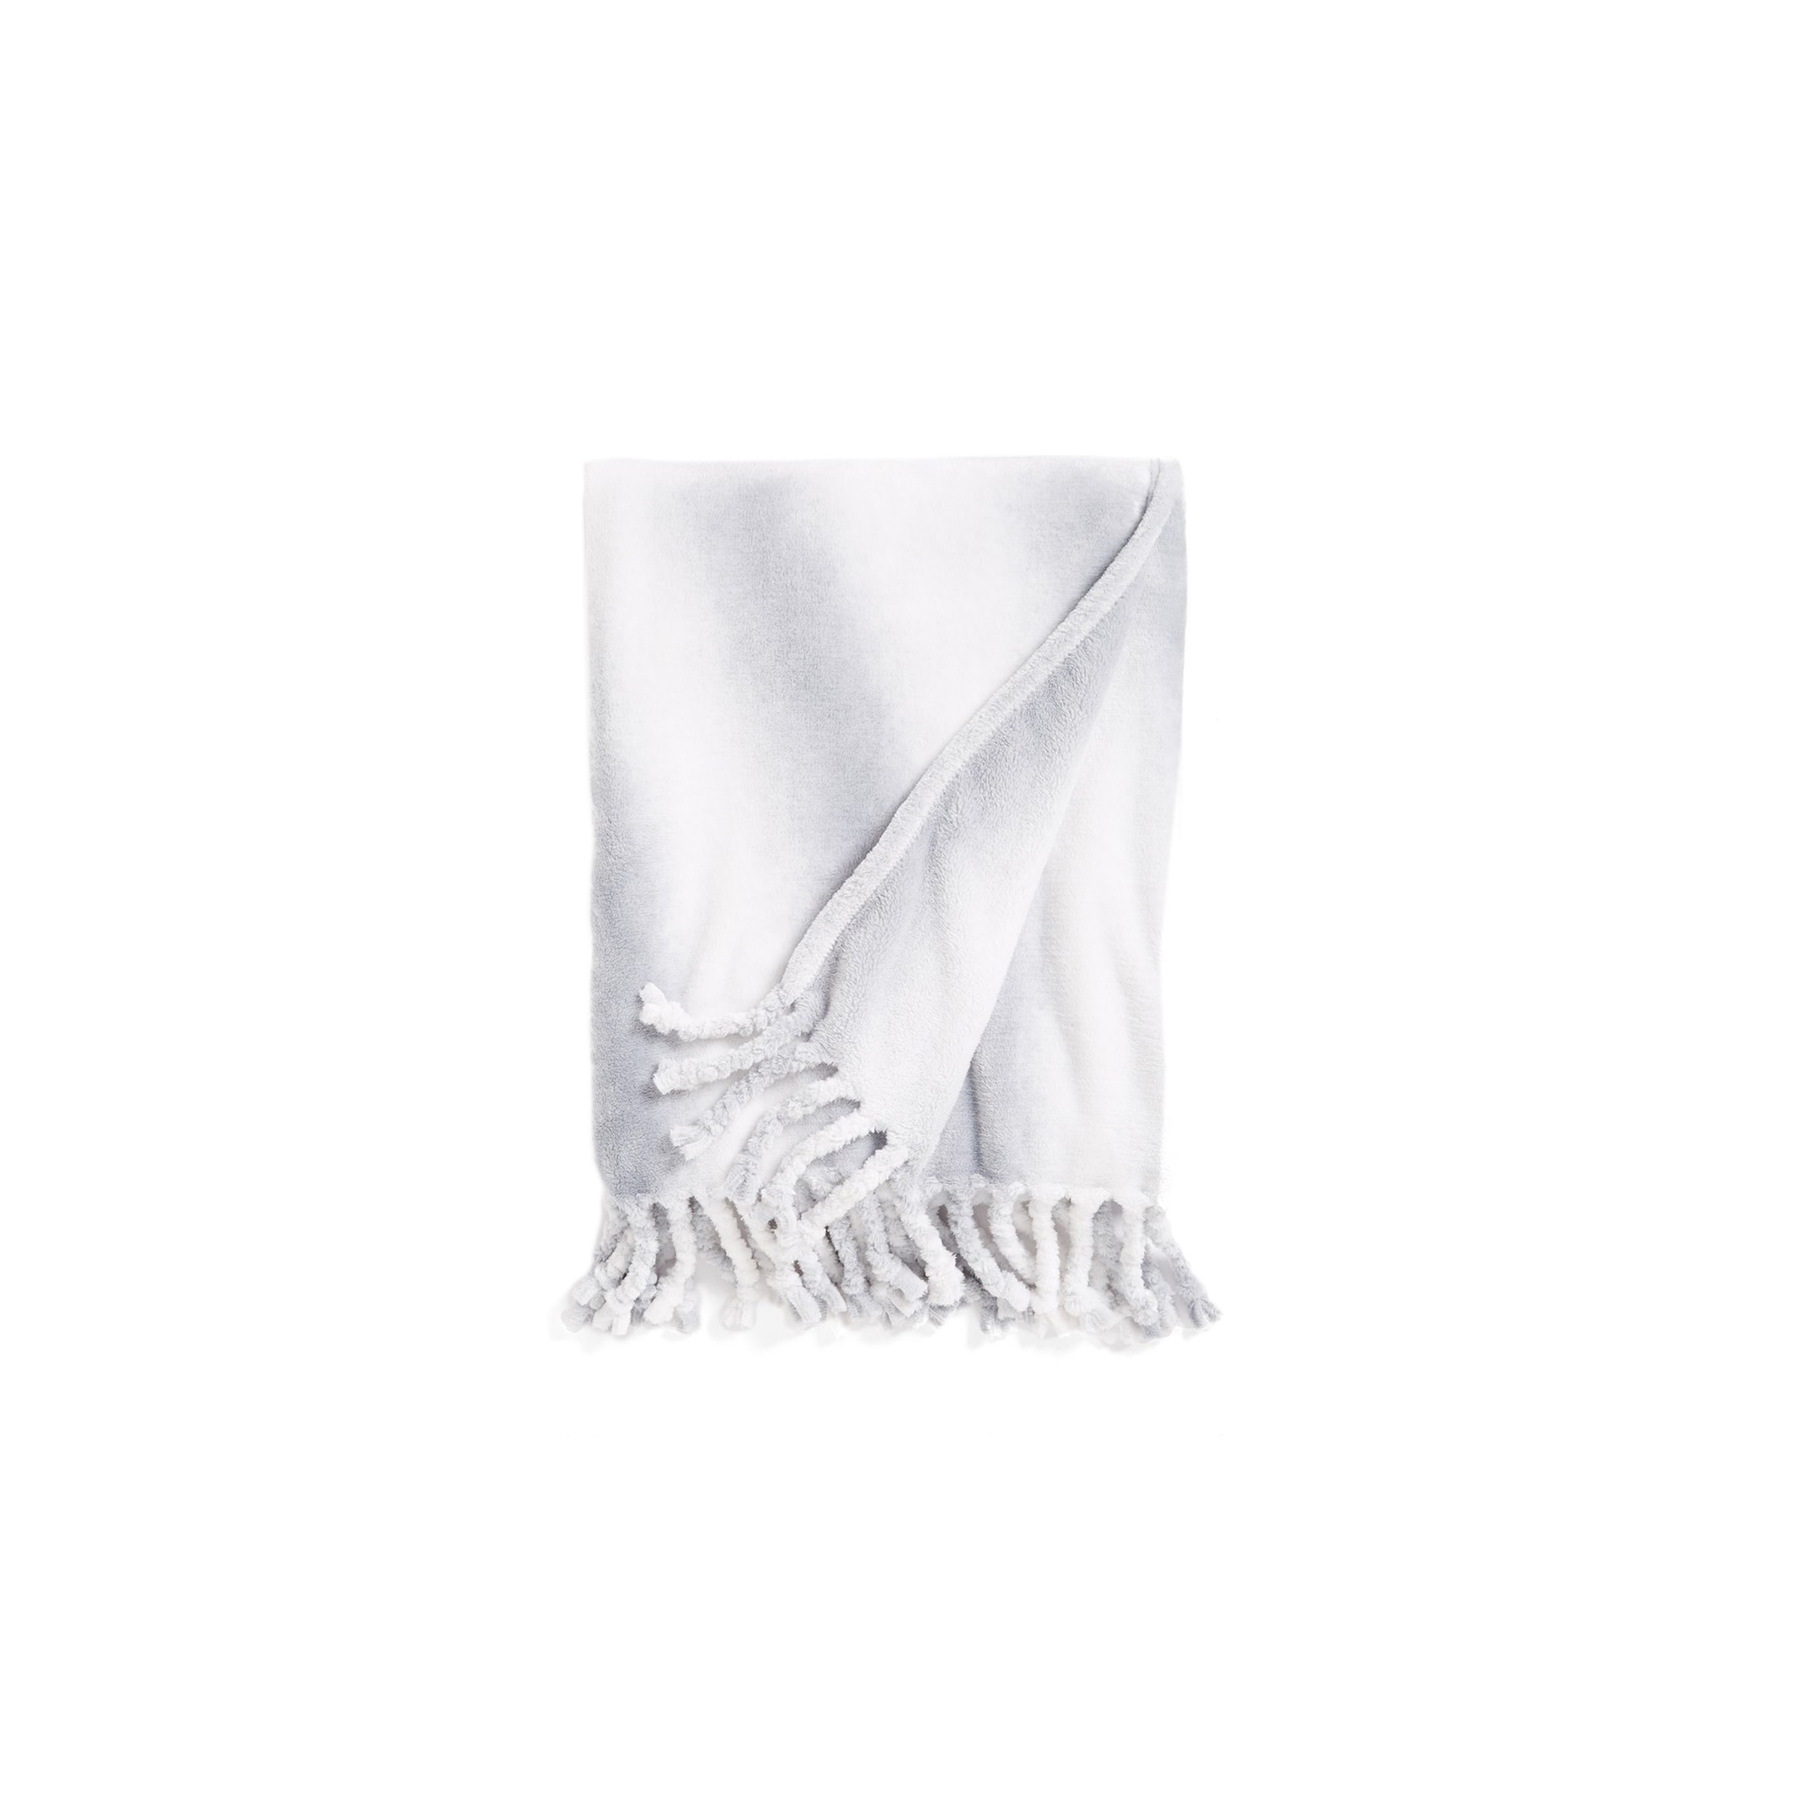 Kennebunk Home 'Bliss Zurich' Throw